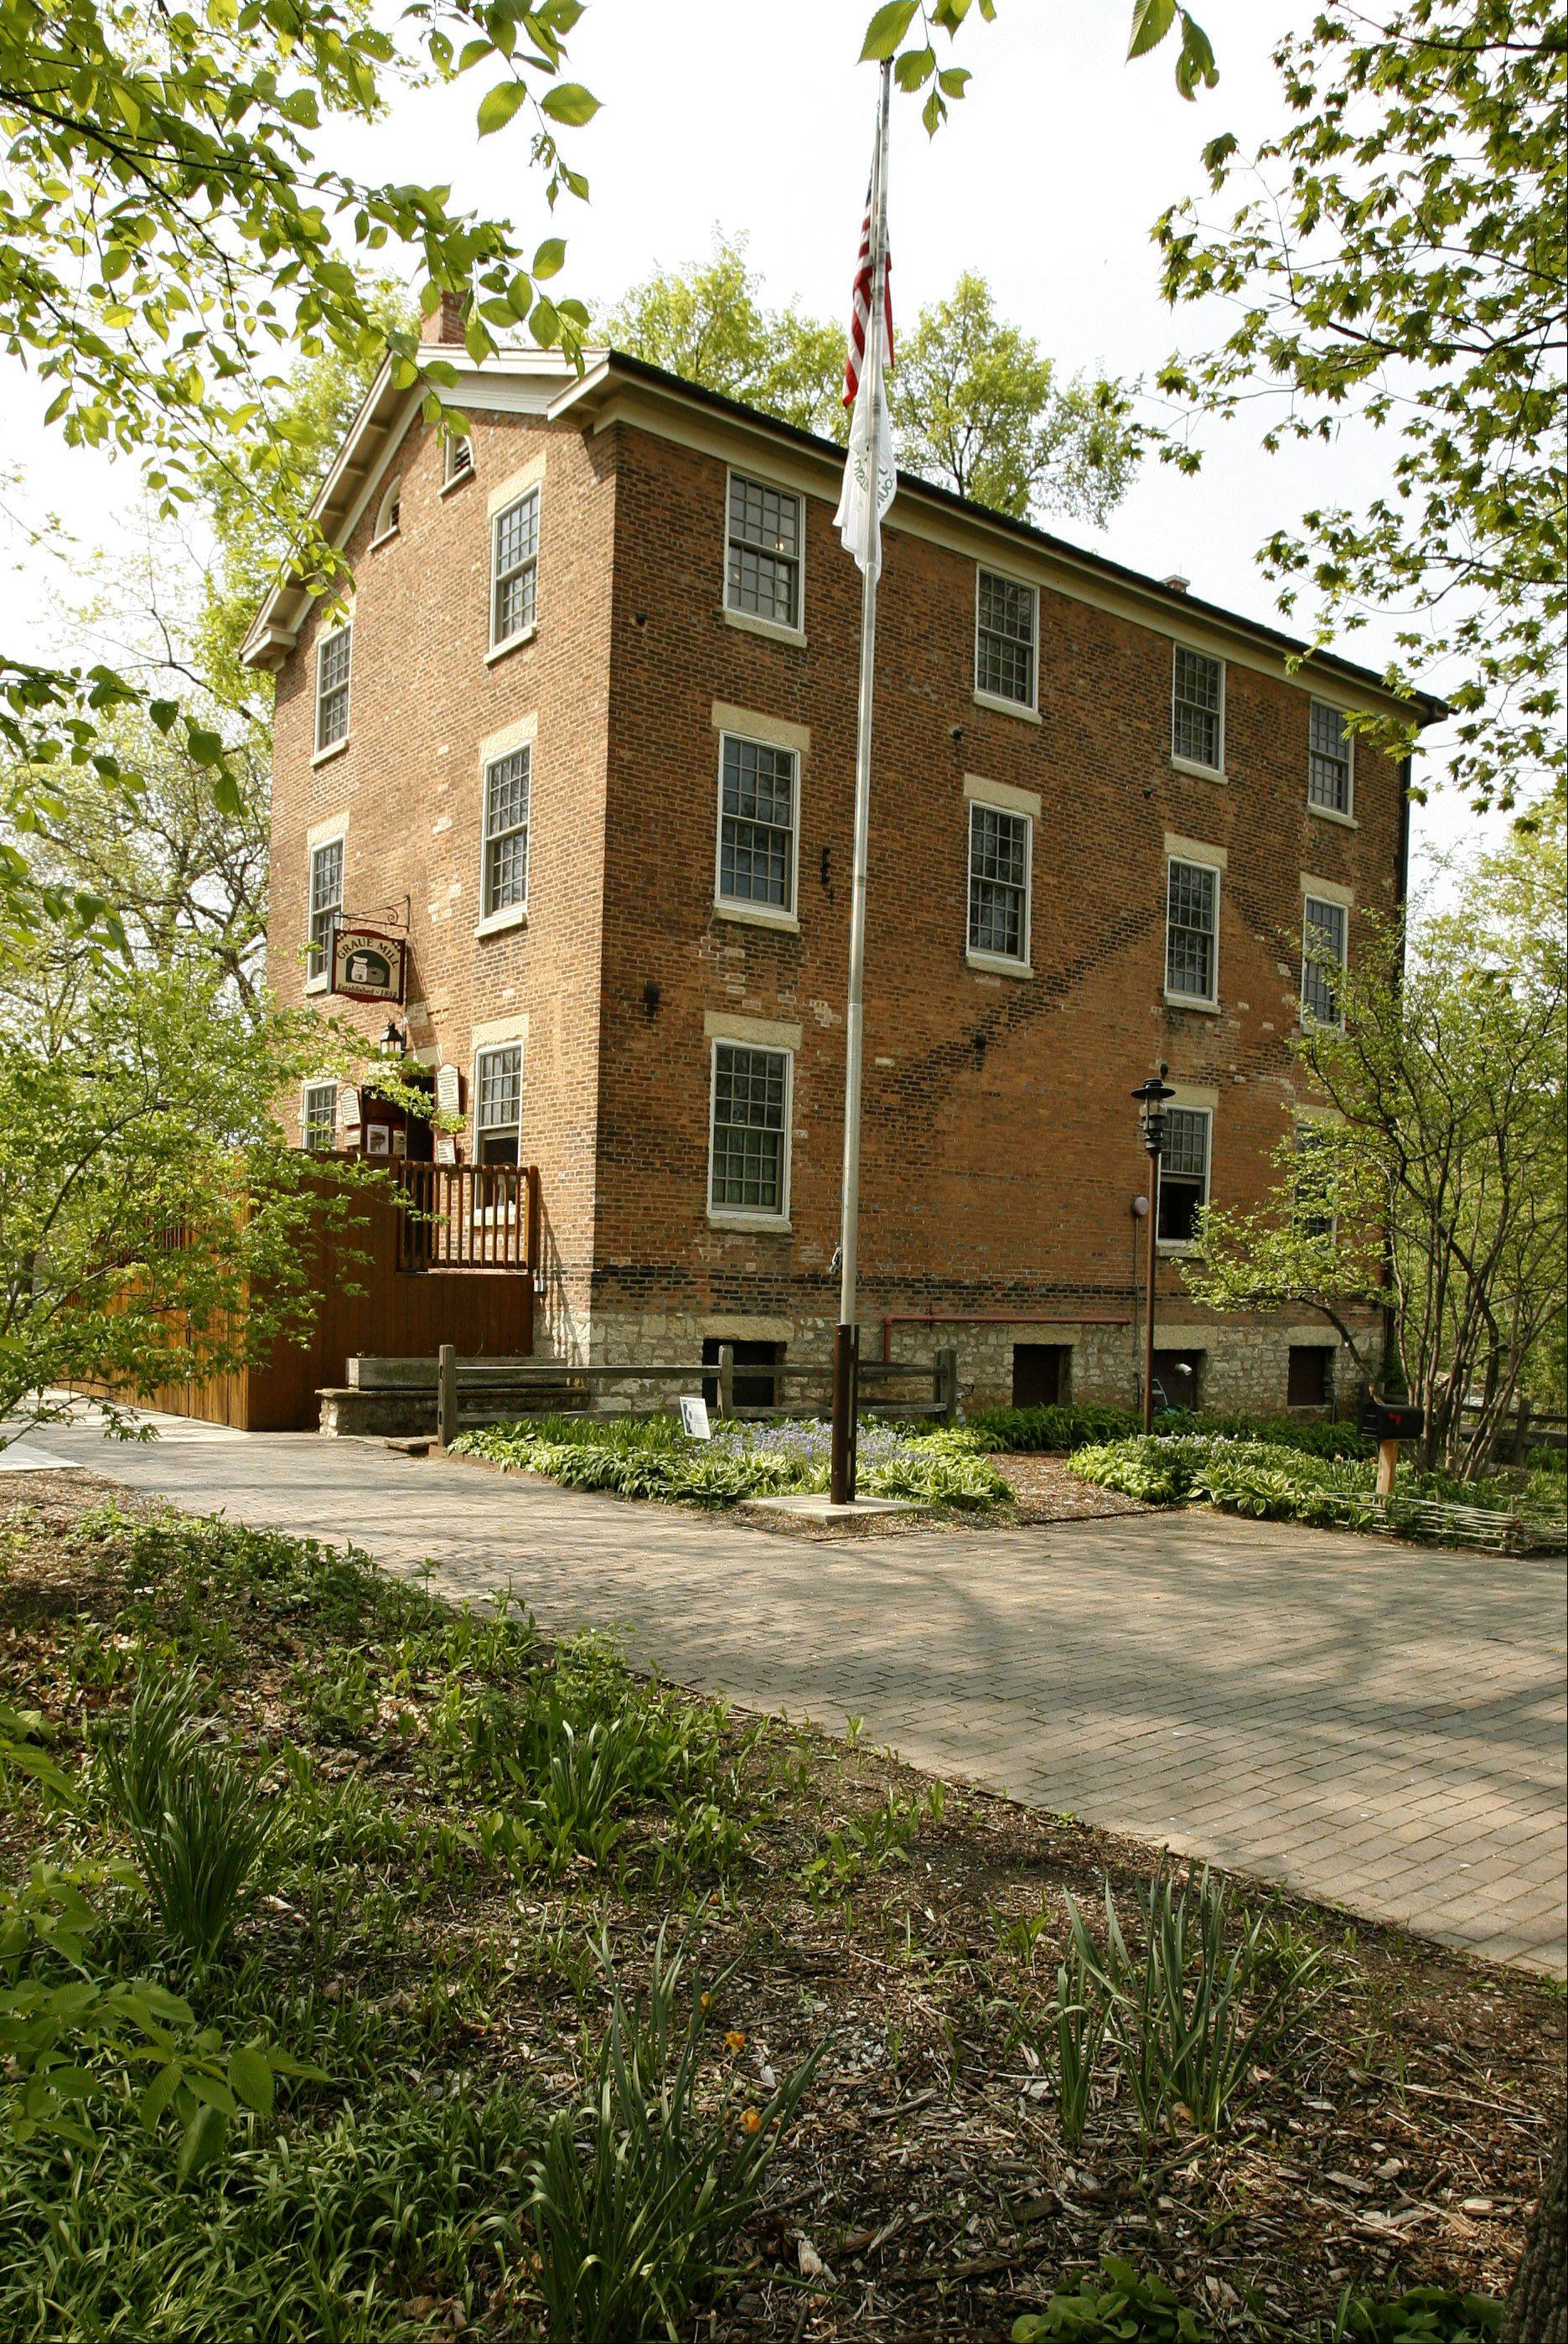 Graue Mill: Completed in 1852, the water-wheel powered grist mill was built by German immigrant Frederick Graue. The forest preserve district took over the property in 1931. In 1950, the DuPage Graue Mill Corp. began leasing the mill from the forest preserve to renovate it as a museum.